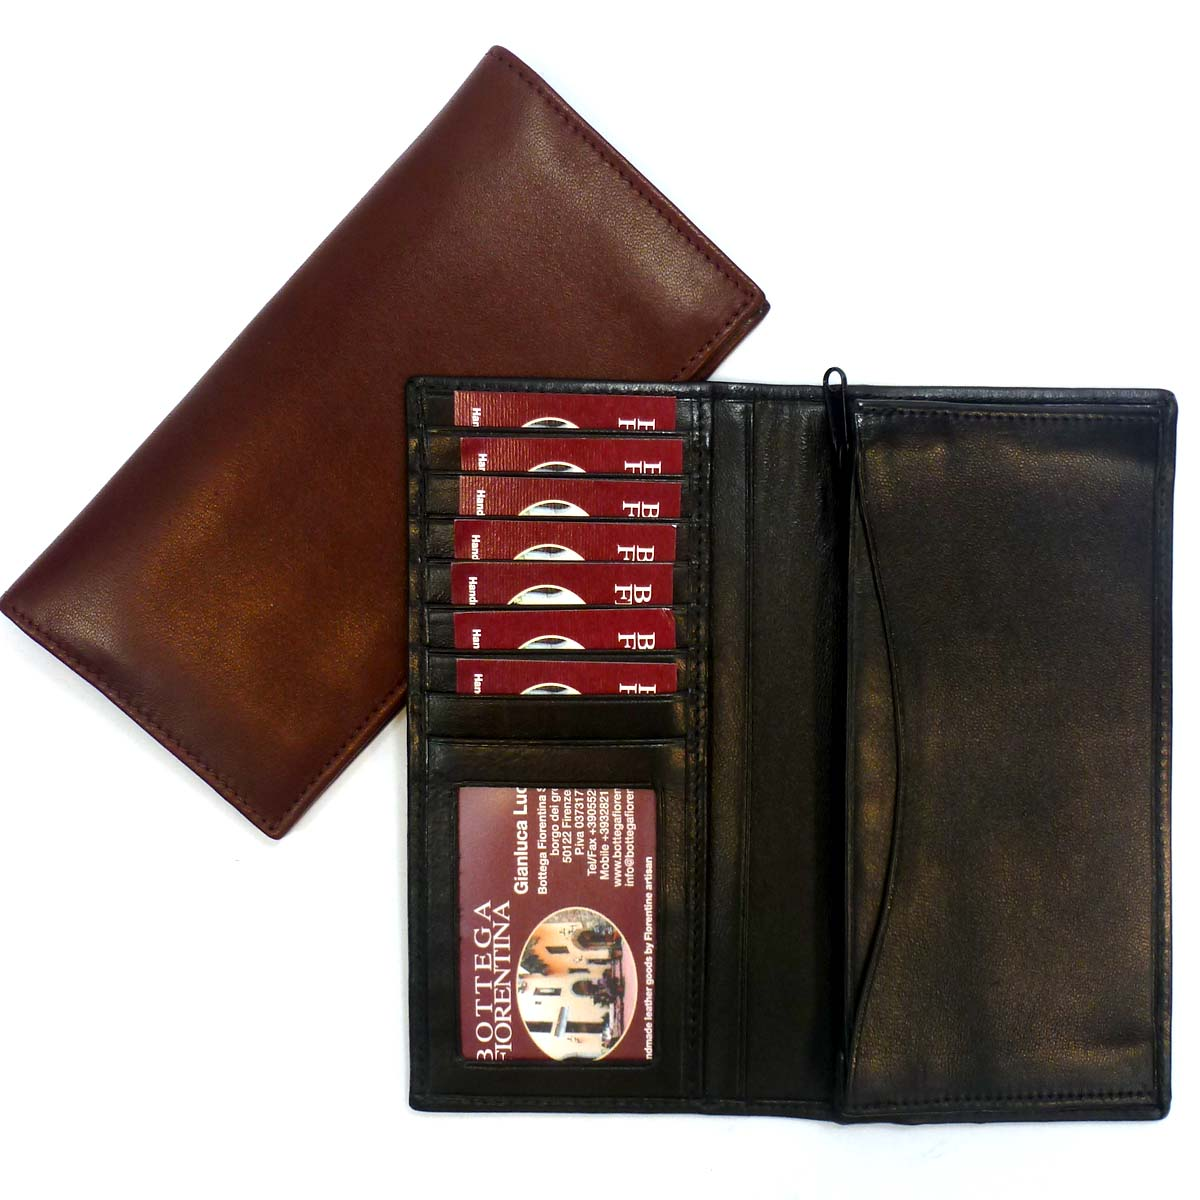 1378 vertical credit card wallet with id window by Bottega Fiorentina